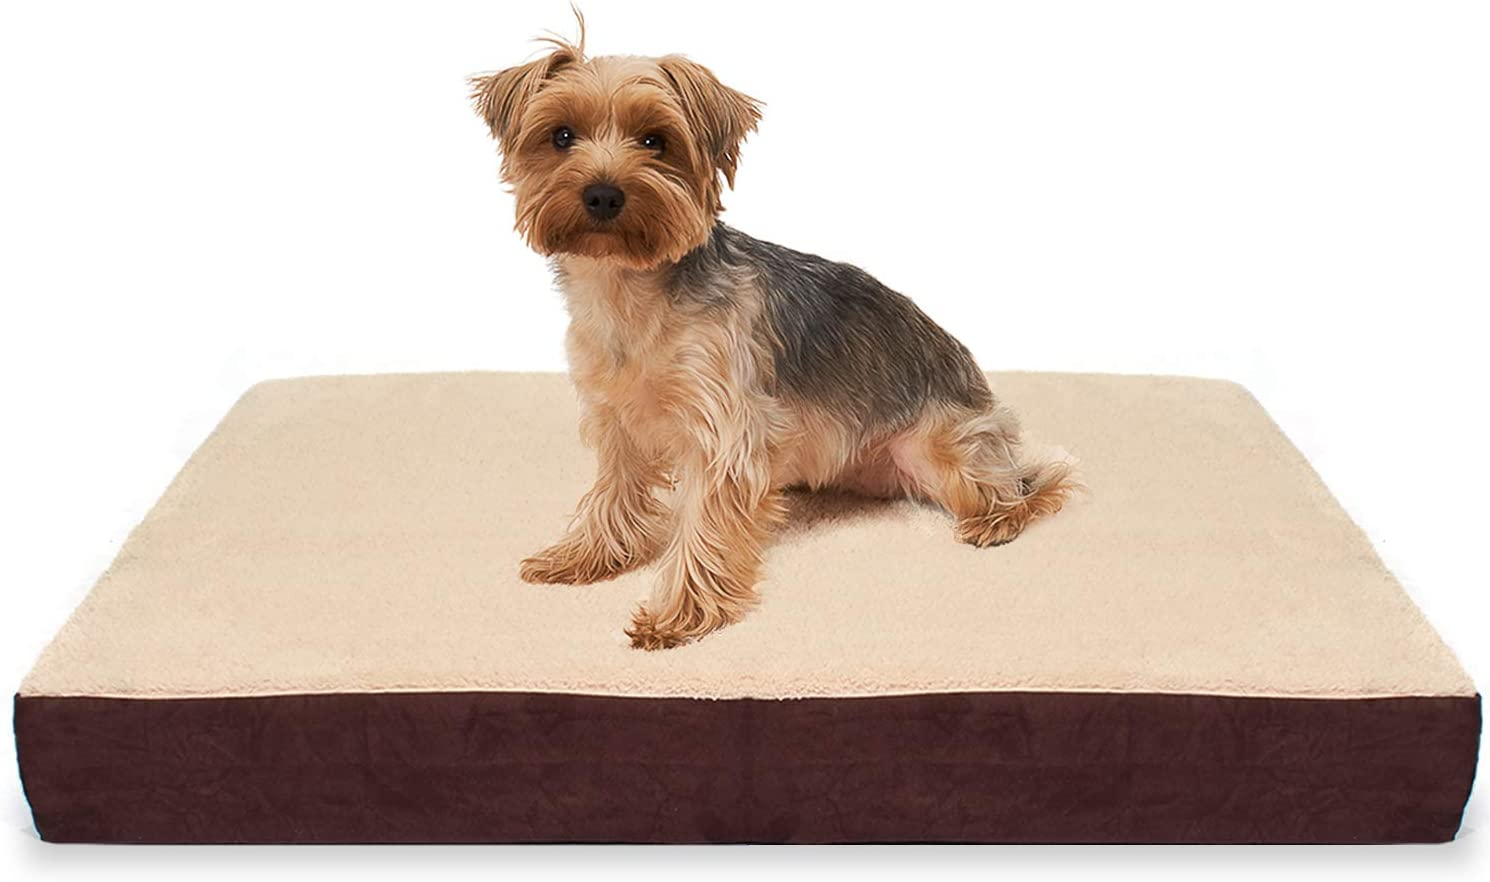 Pet Support Systems Orthopedic Memory Foam Dog Beds – Eco Friendly, Hypoallergenic and Made in The USA, Supreme Luxury Comfort and Care for Dogs with Removable and Washable Cover